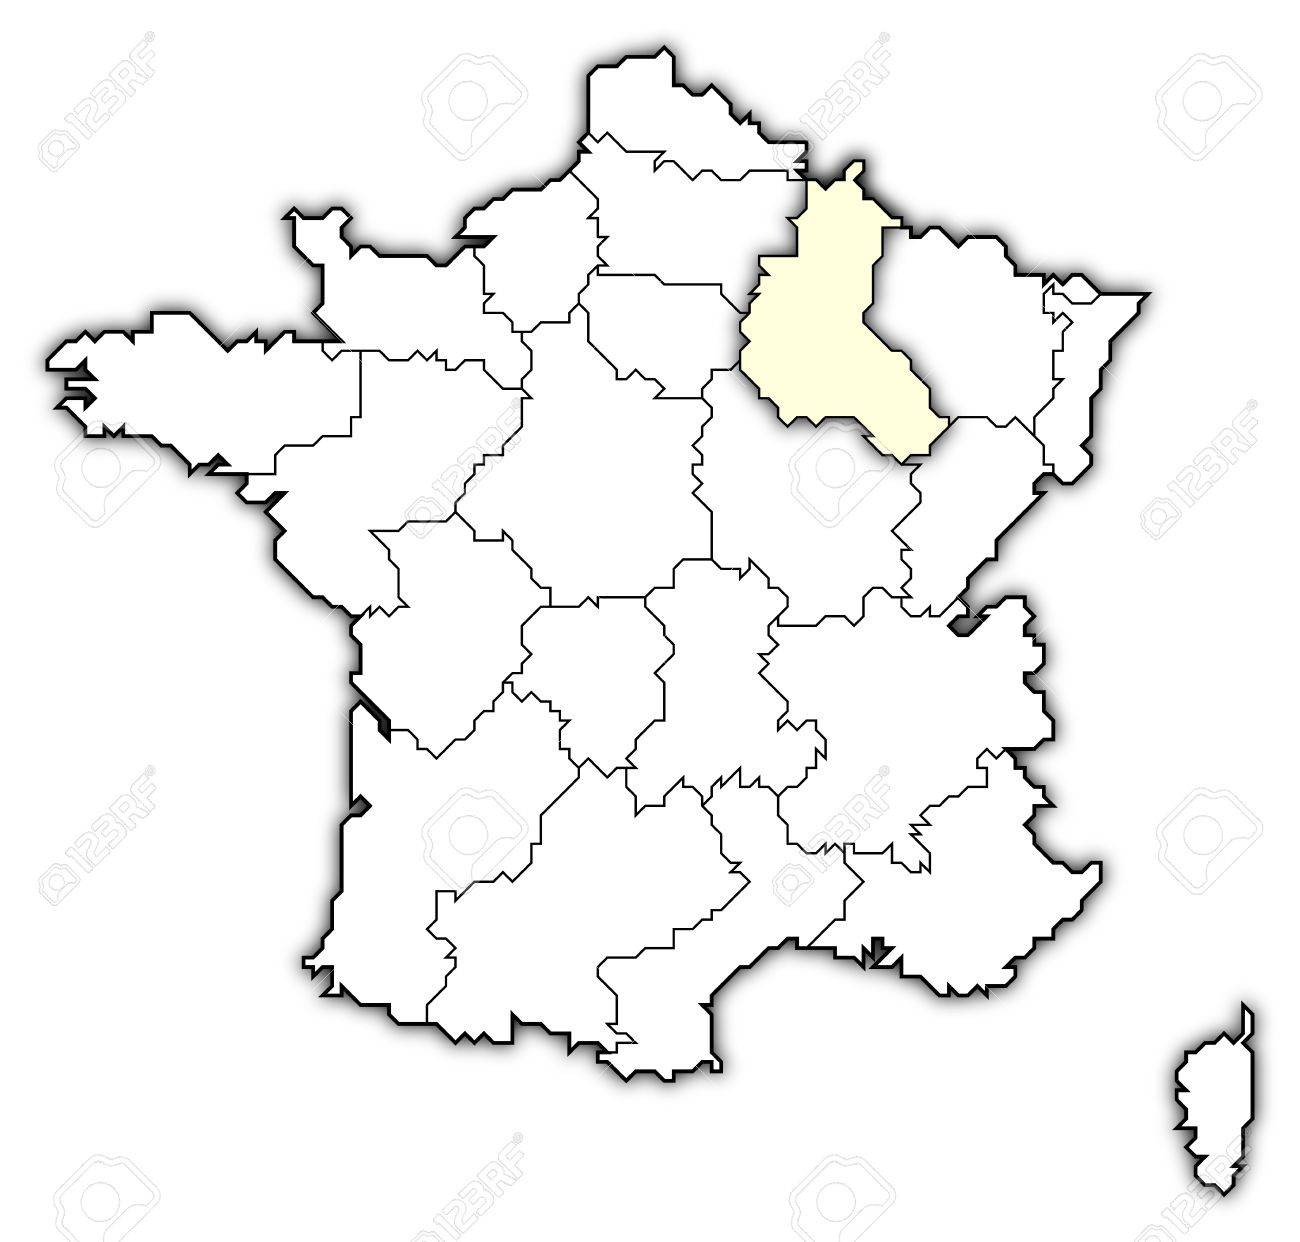 political map of france with the several regions where champagne